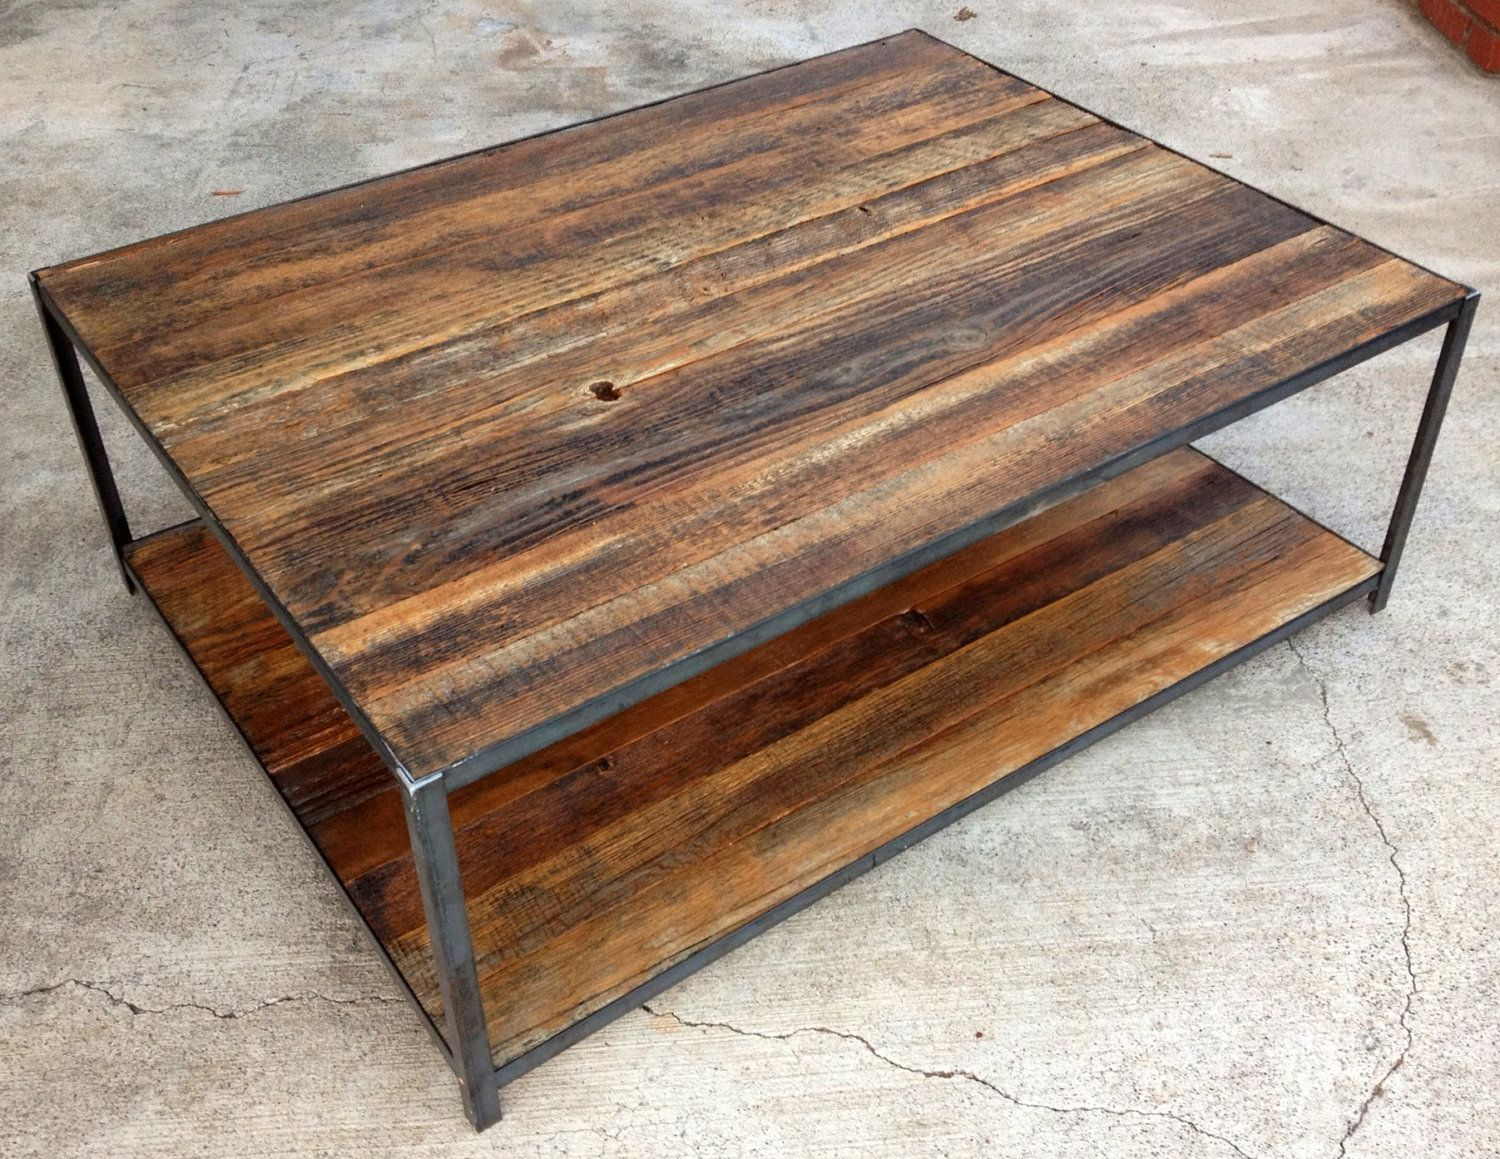 Reclaimed wood and angle iron coffee table via Wood and steel furniture